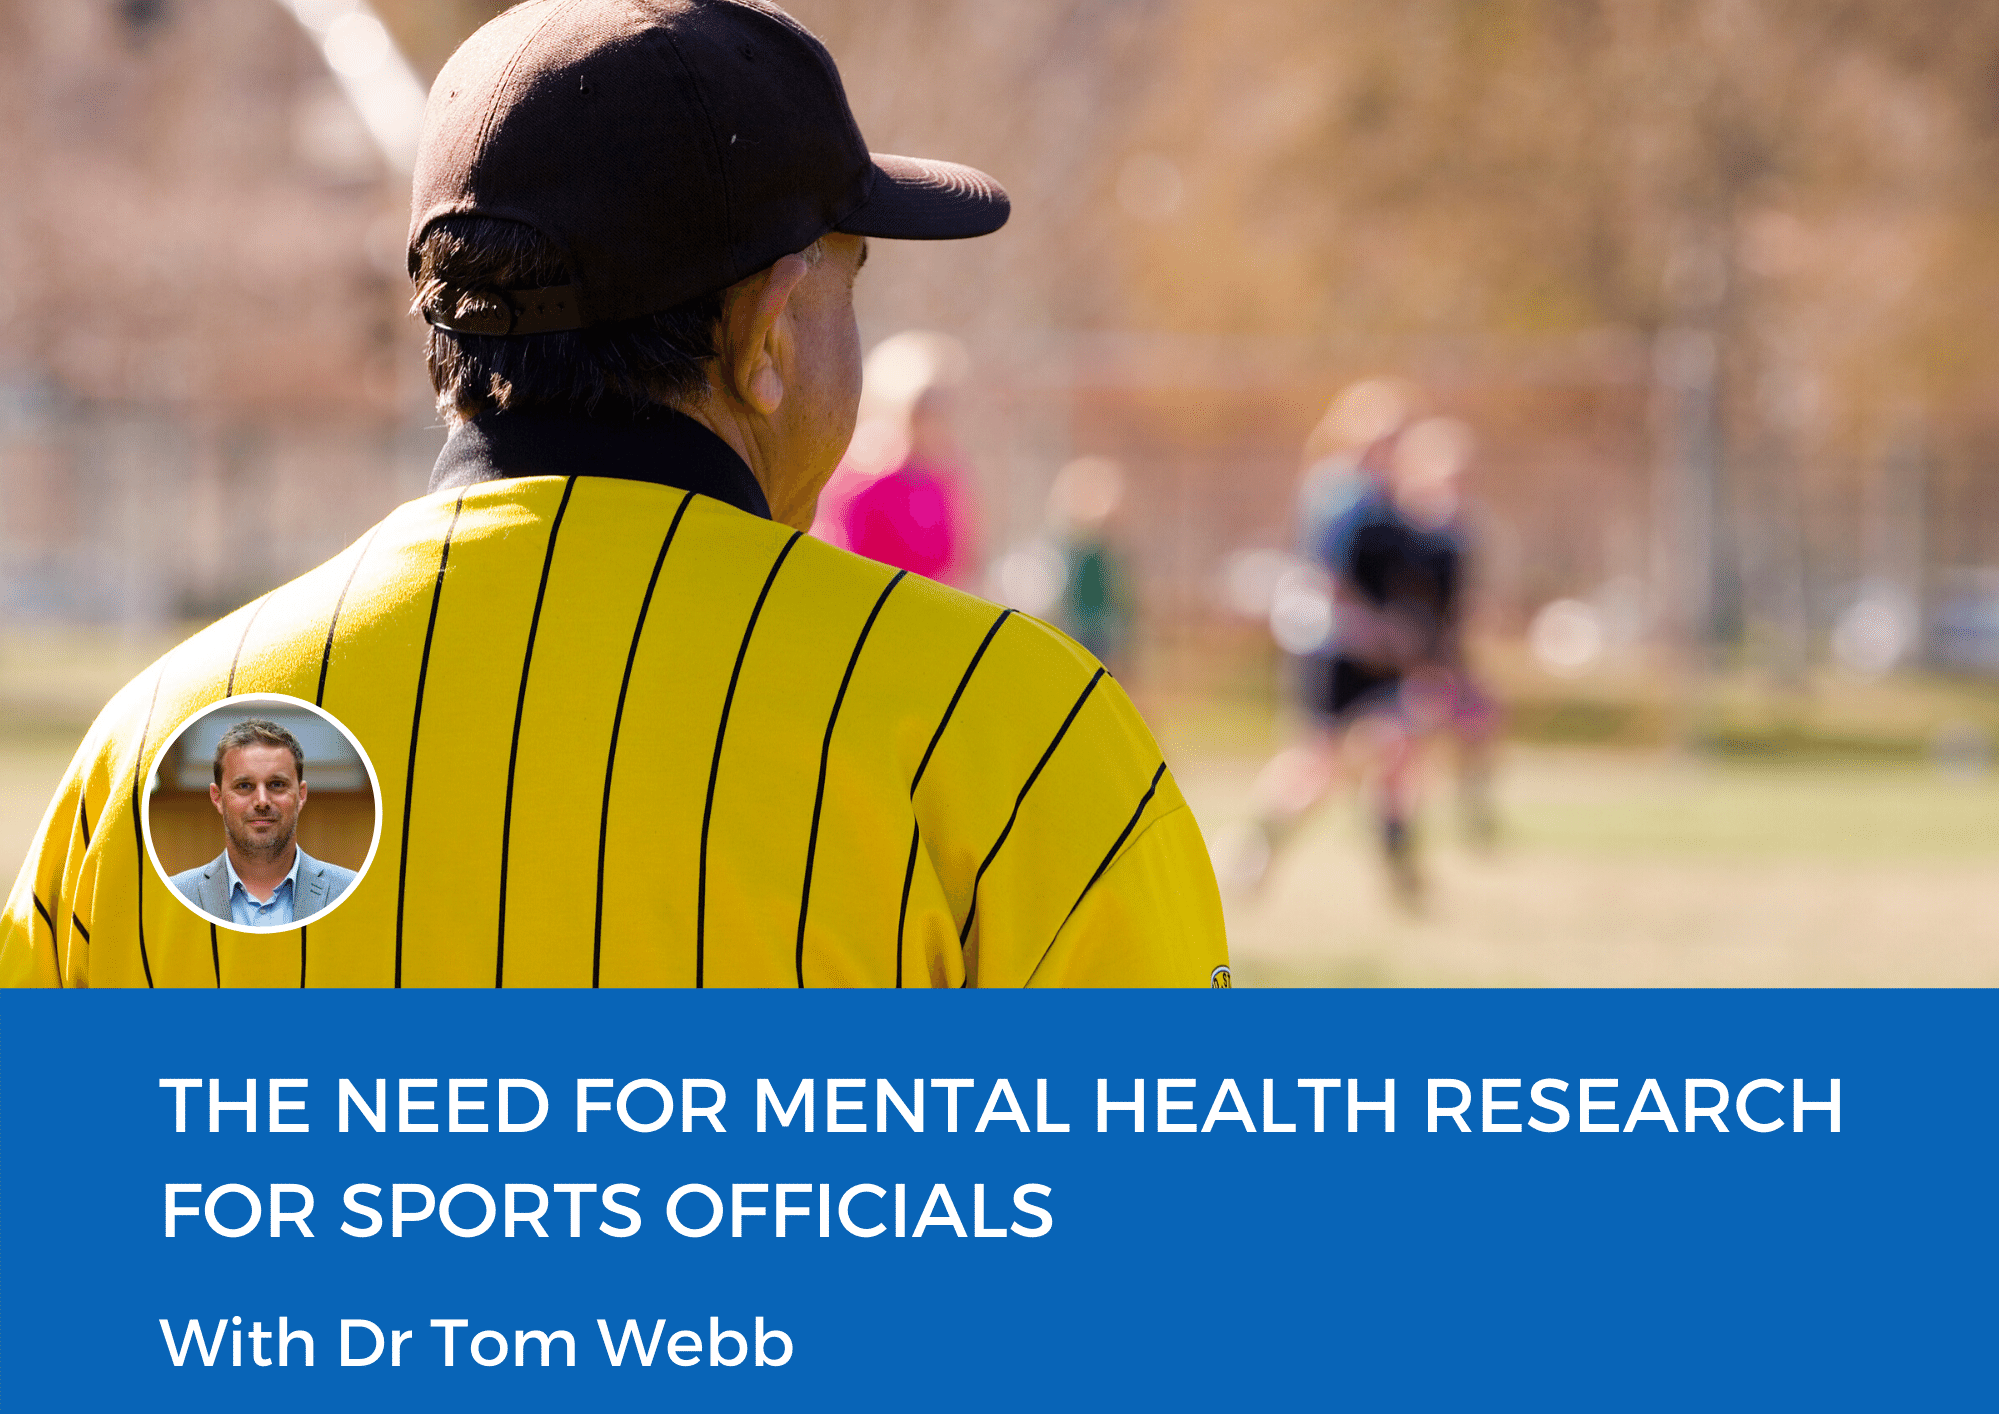 The Need for Mental Health Research for Sports Officials